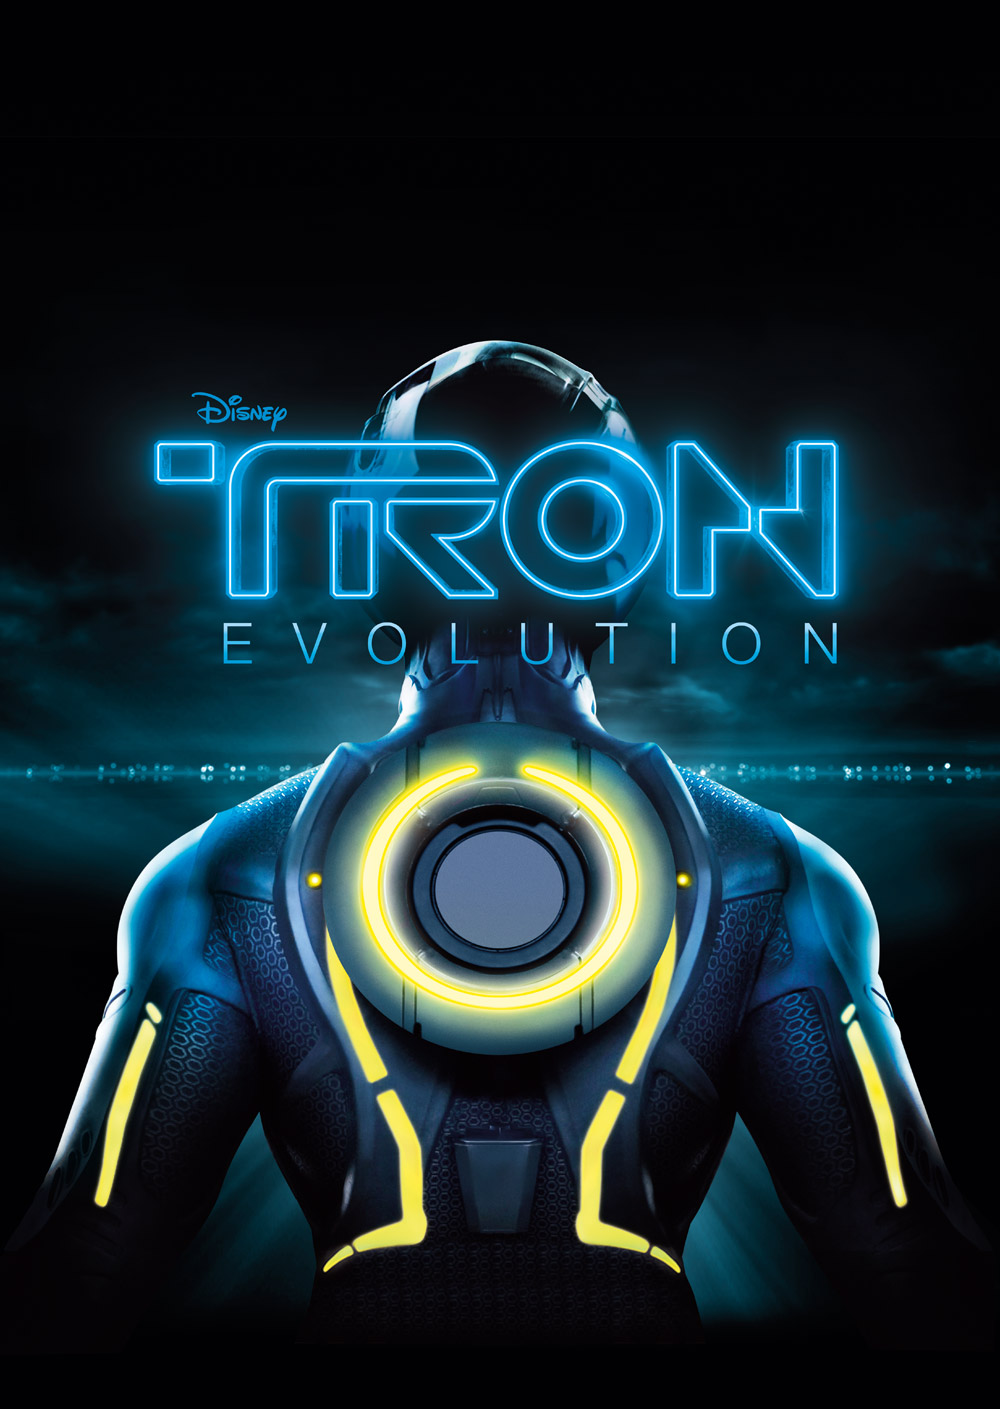 Samsung S8 3d Wallpaper Download Tron Evolution Windows X360 Ps3 Psp Game Mod Db